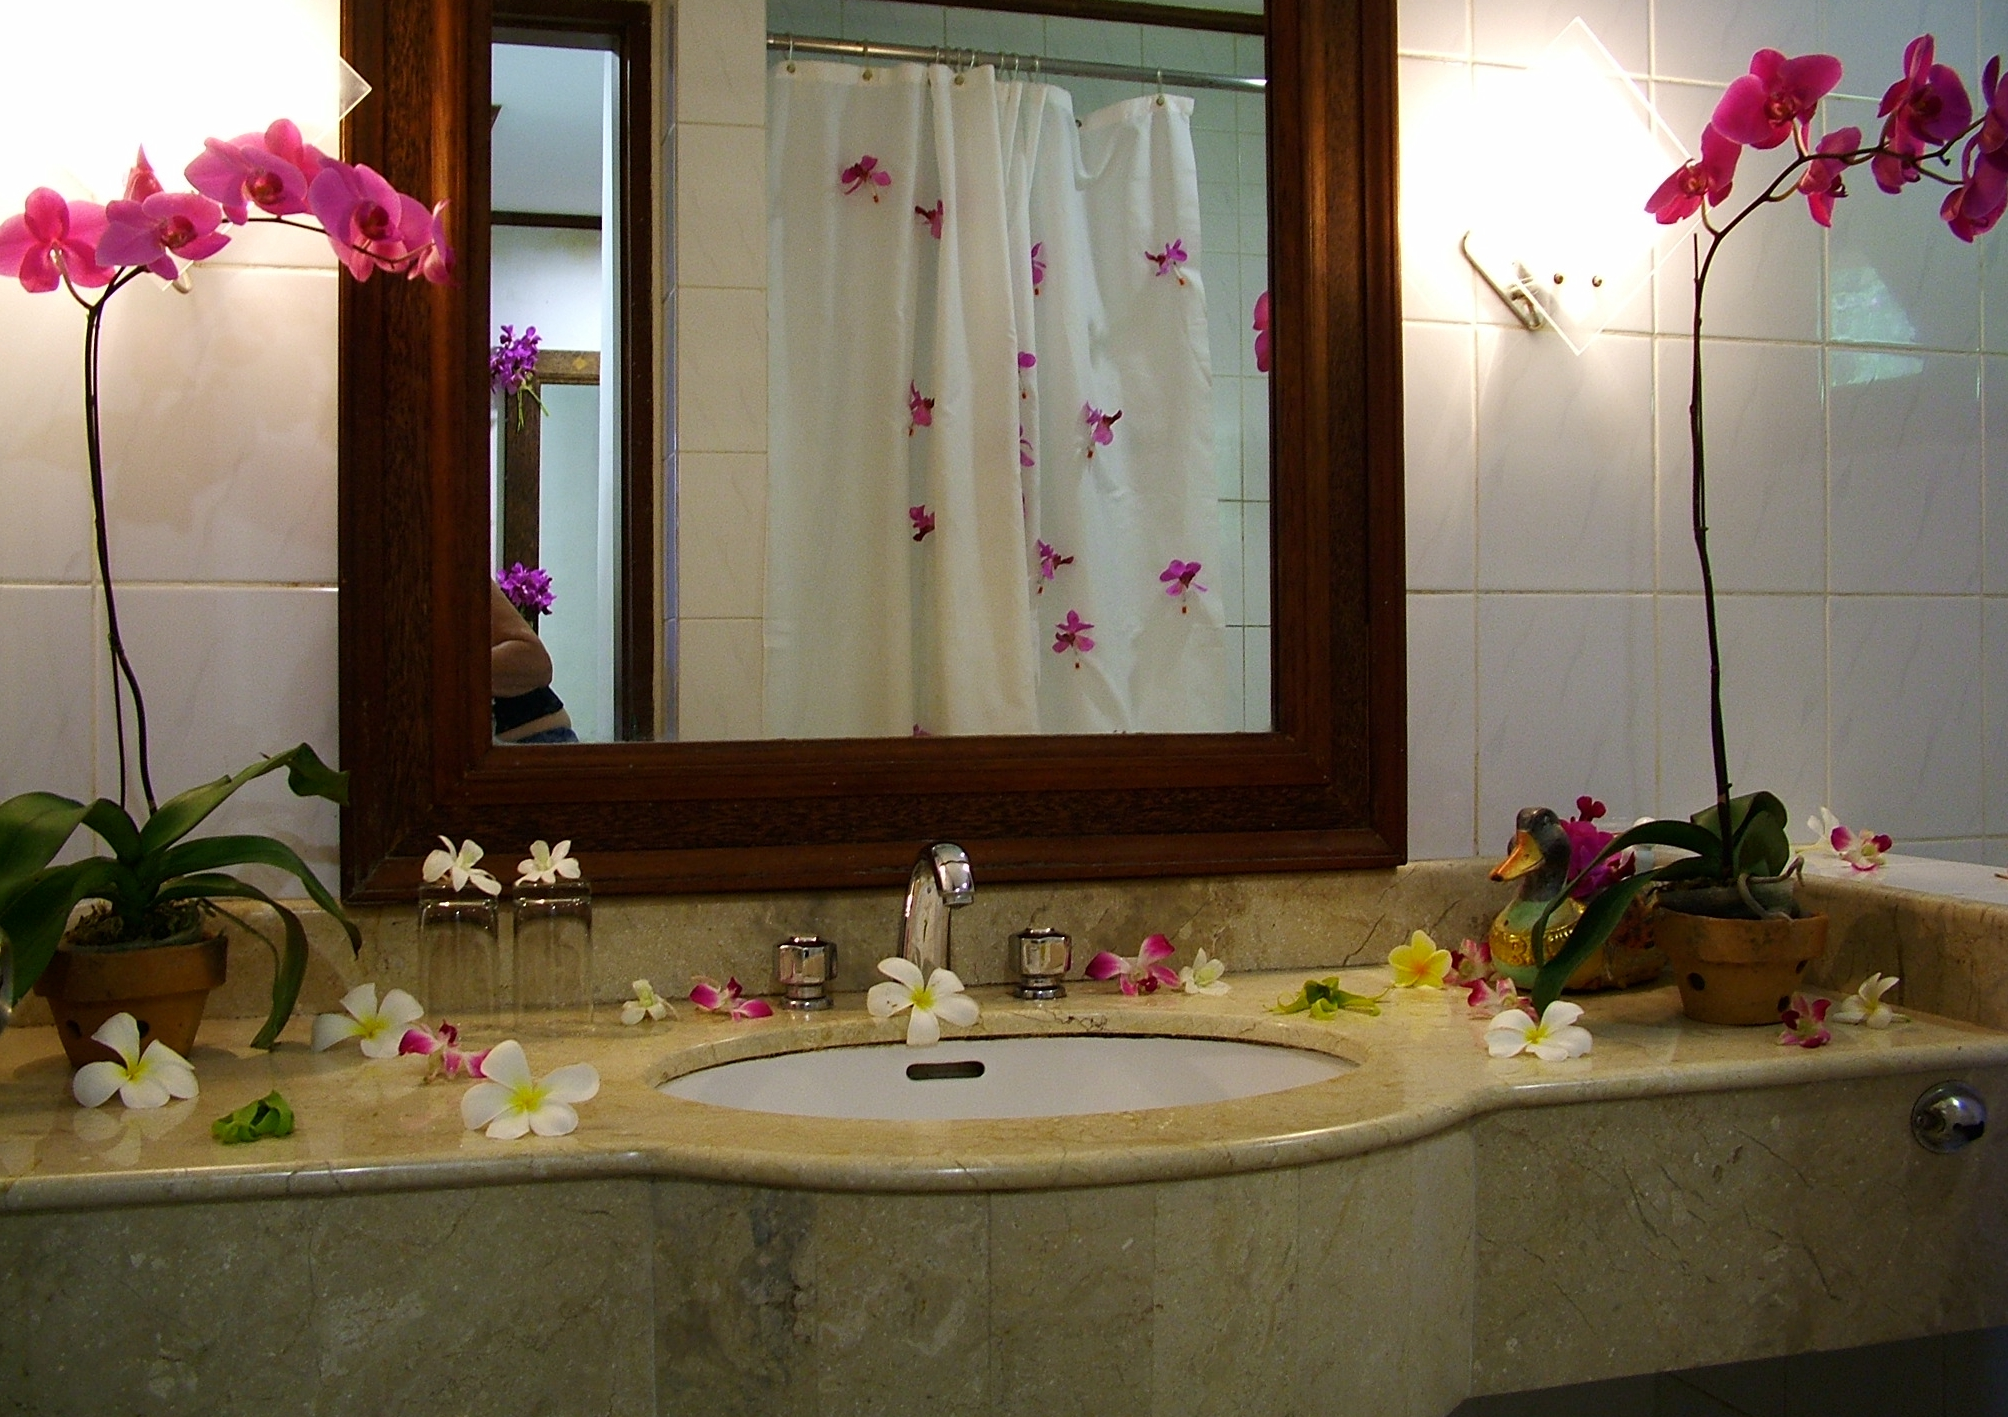 Bathroom Decoration Ideas: Easy Bathroom Decorating Ideas